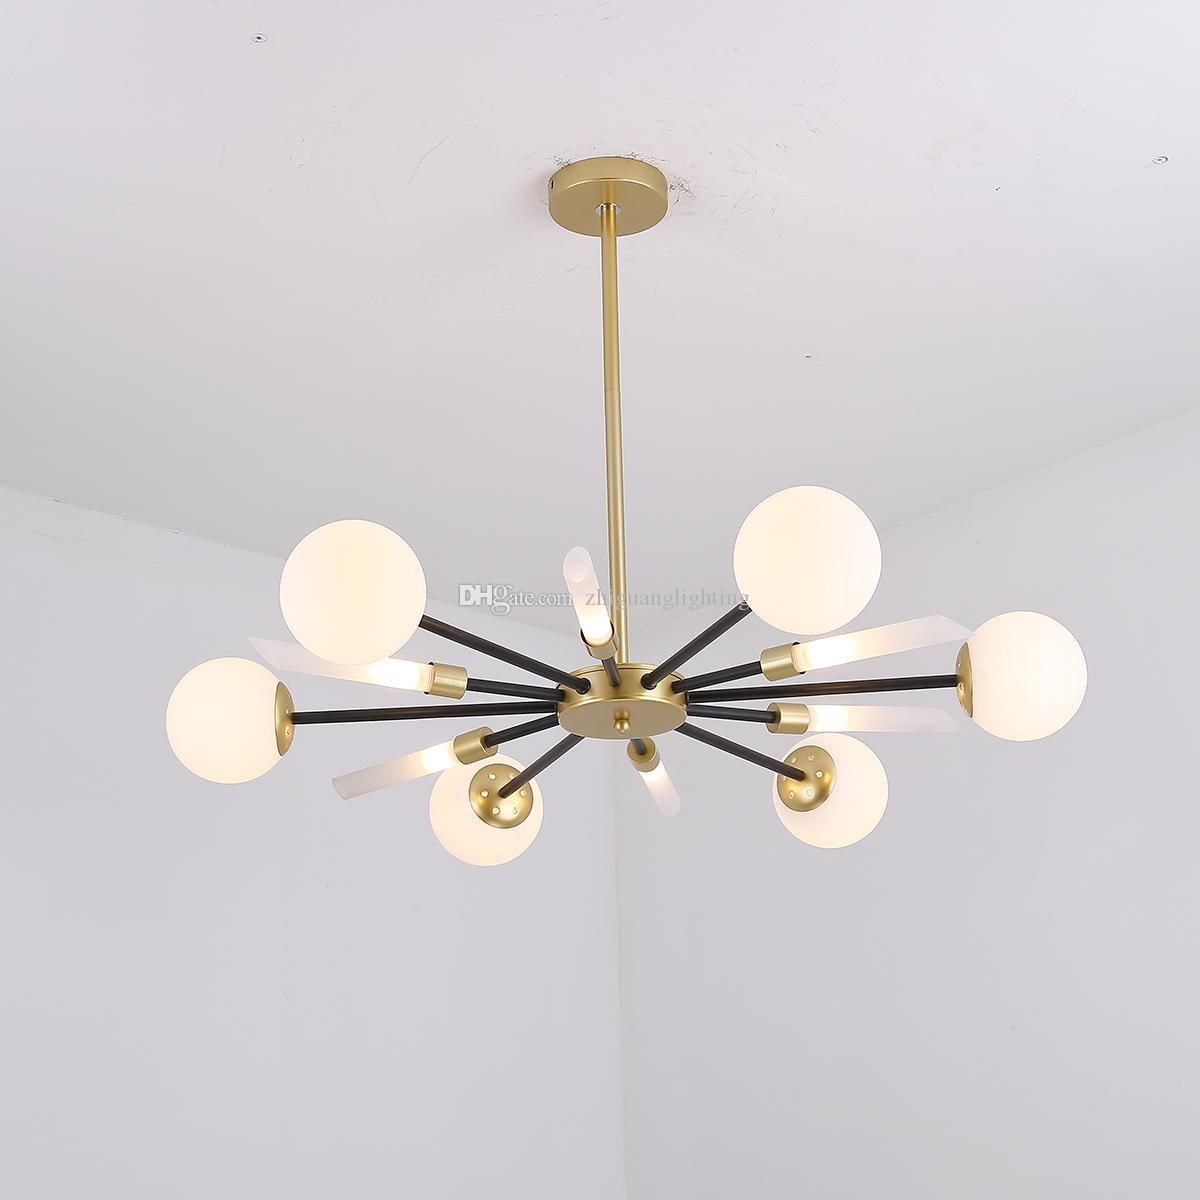 Pendant Lights American Style Gold Iron Pendant Light Fixture For Dining Room Kitchen Island Living Room Pendant Lamp Nordic Hanging Lamp A Great Variety Of Models